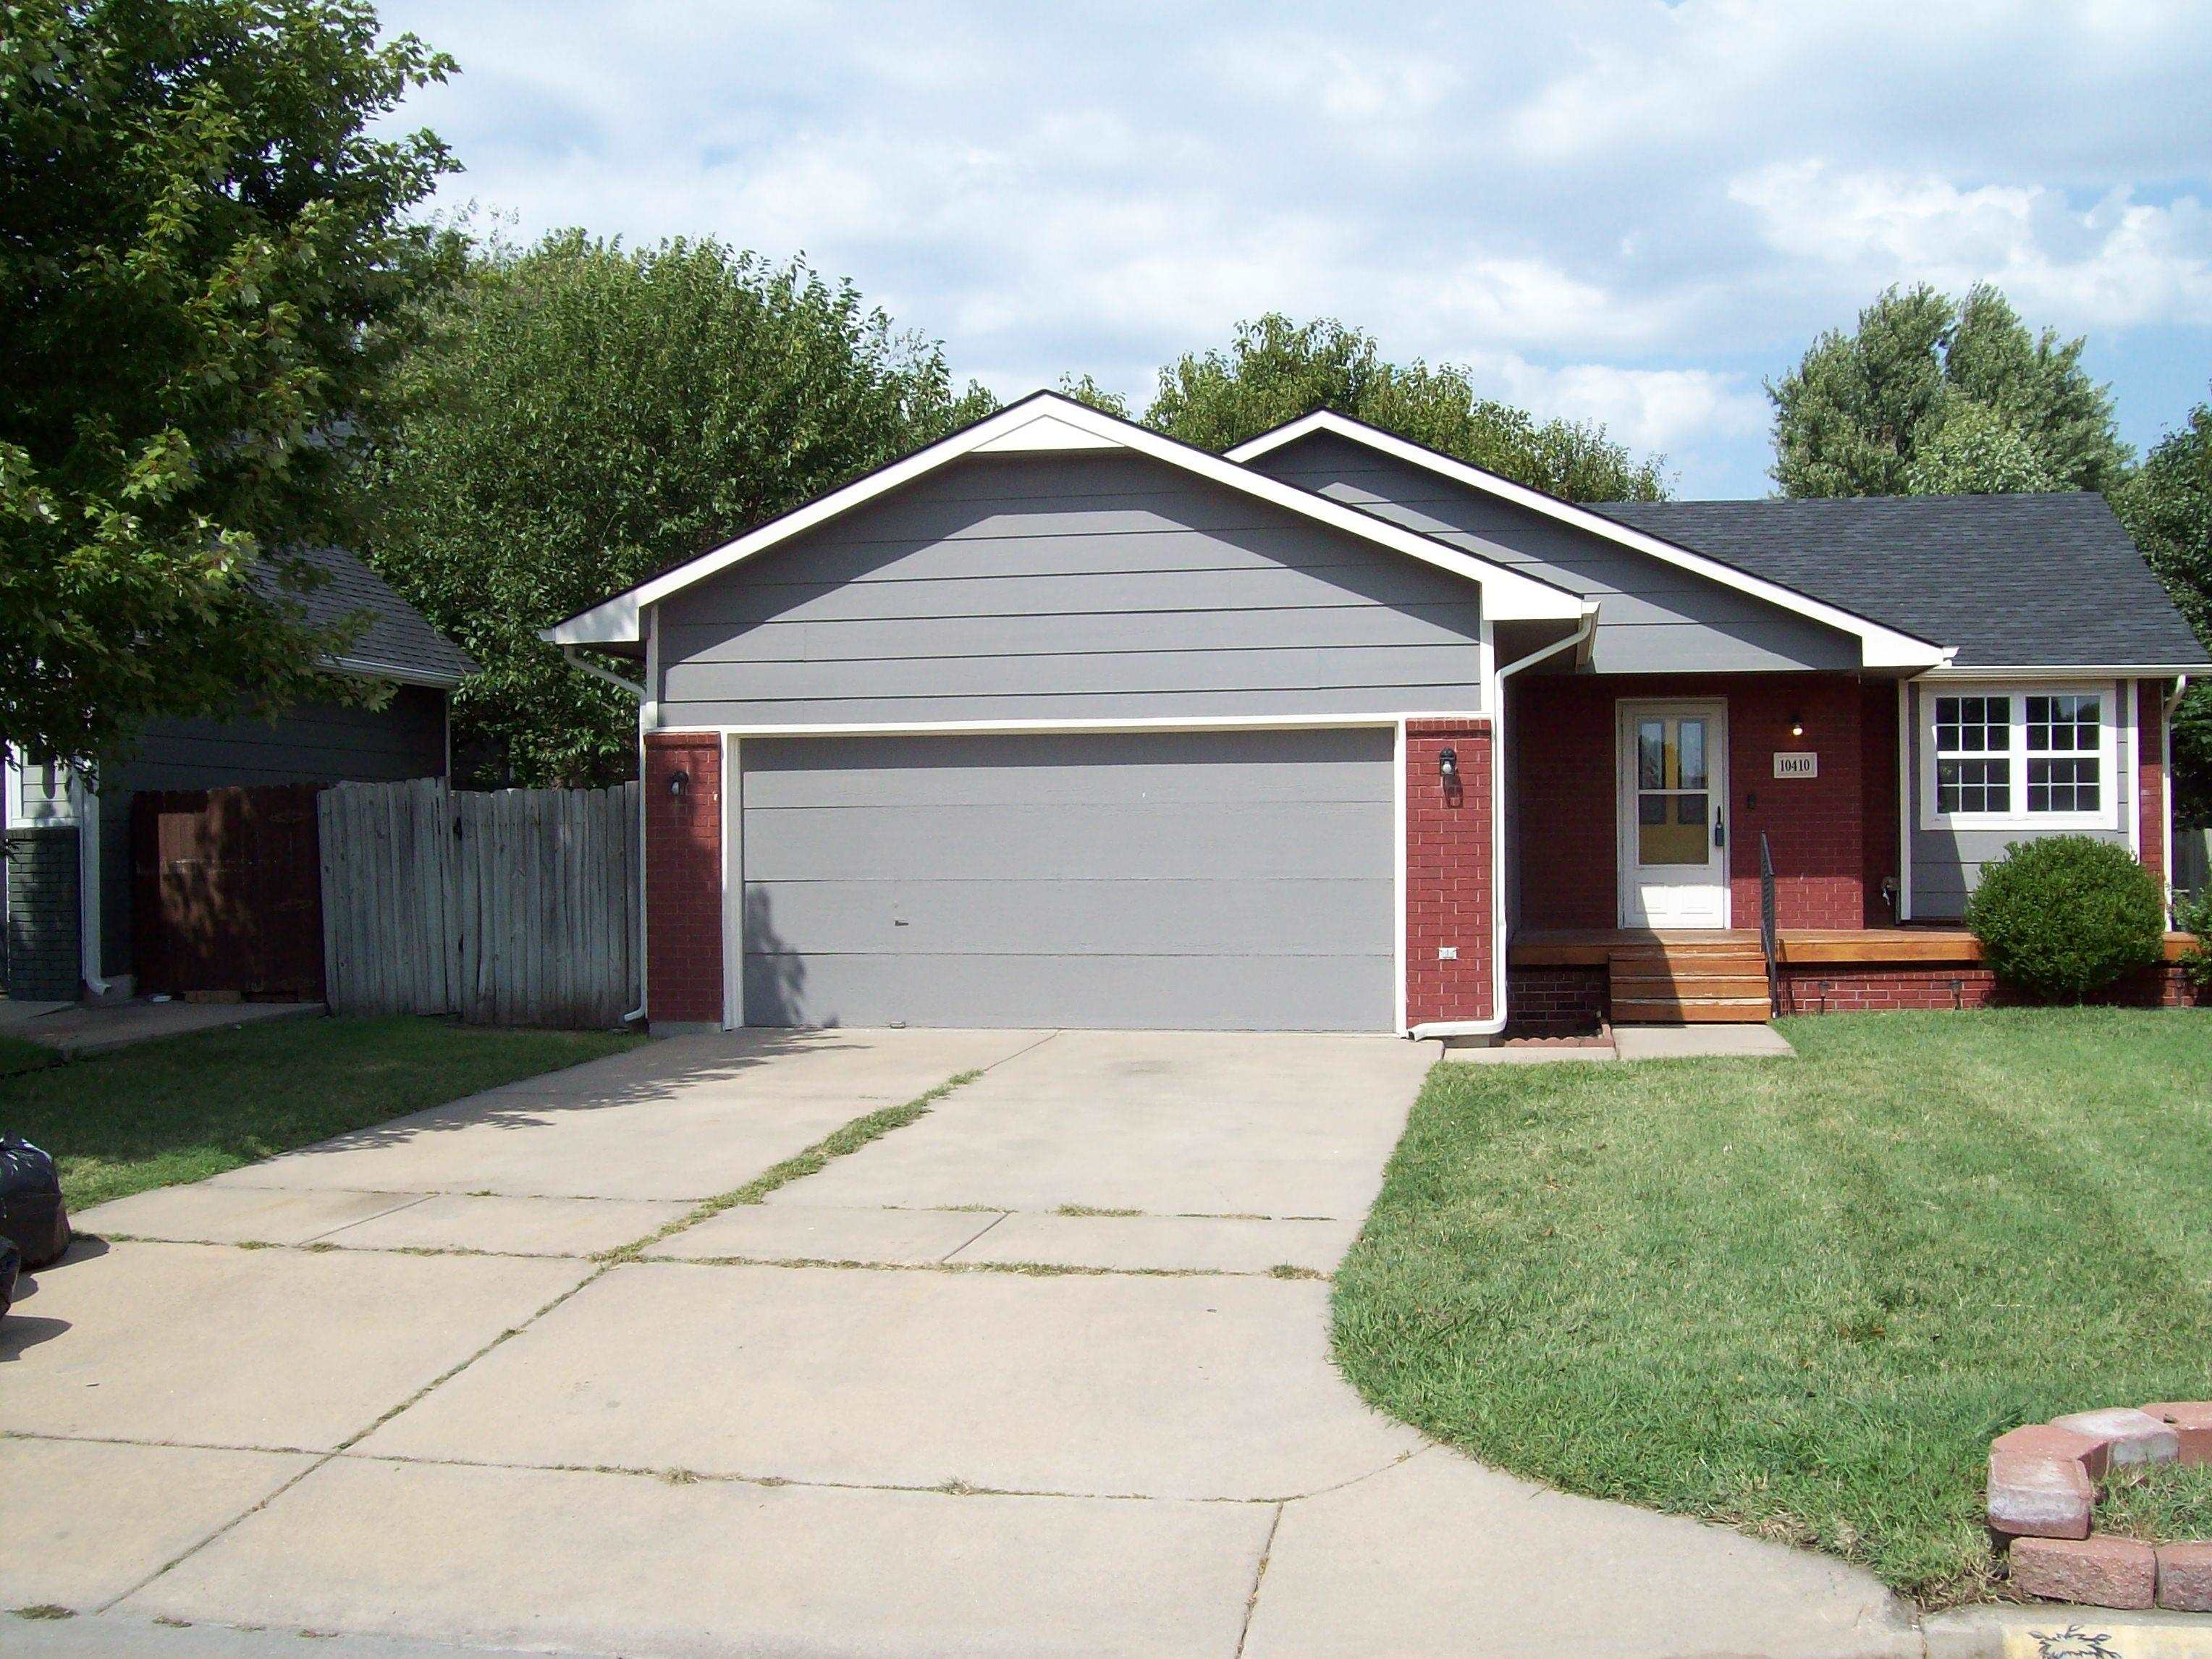 4 bedroom Ranch with finished basement. 2 car garage, large front porch and covered deck and patio.